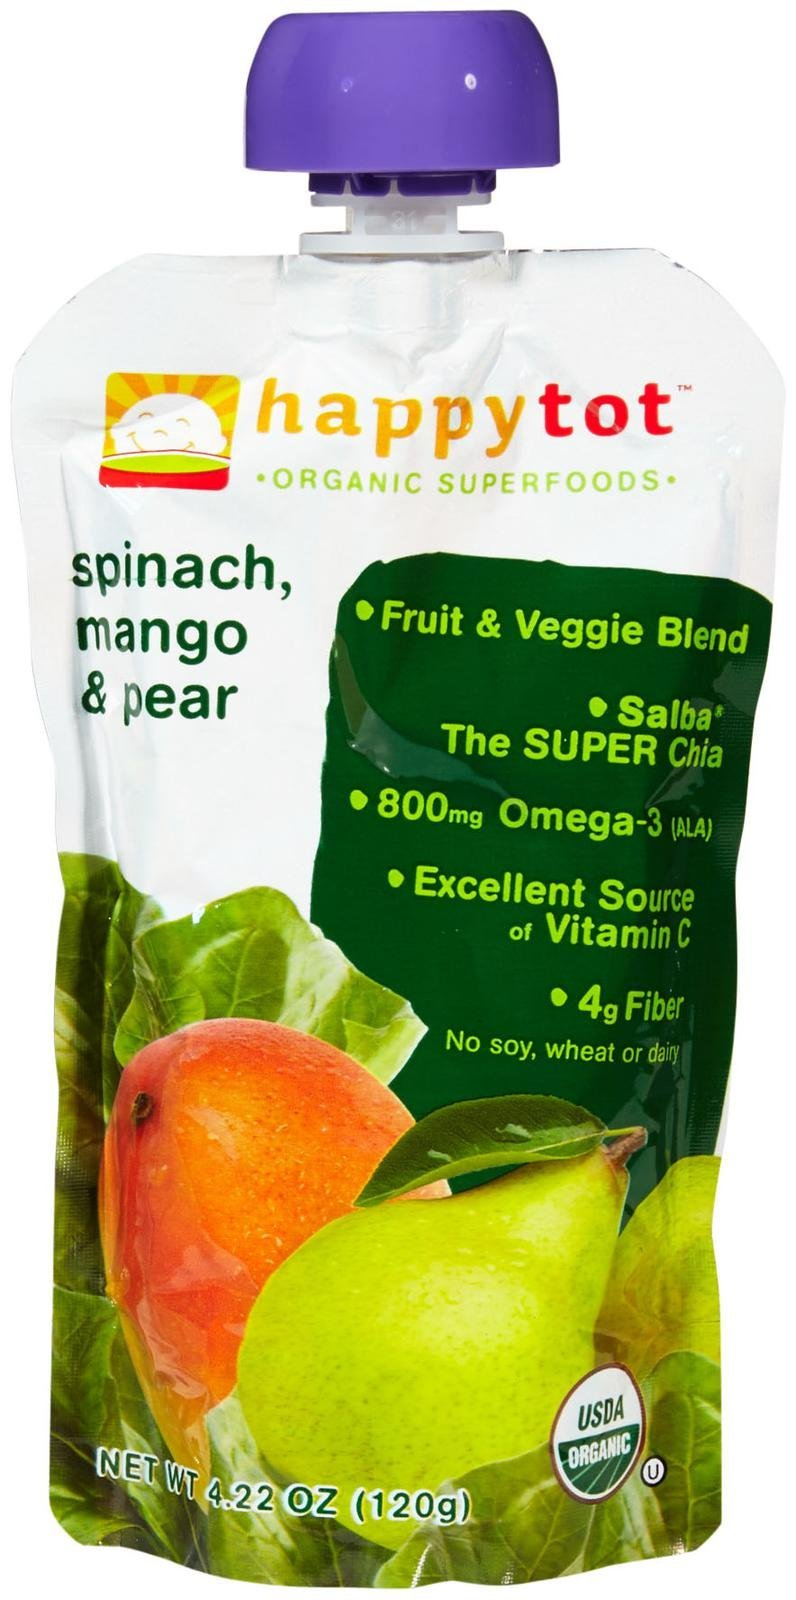 Happy Family happy tot Purees - Spinach Mango and Pear - 4.22 oz - 8 pack